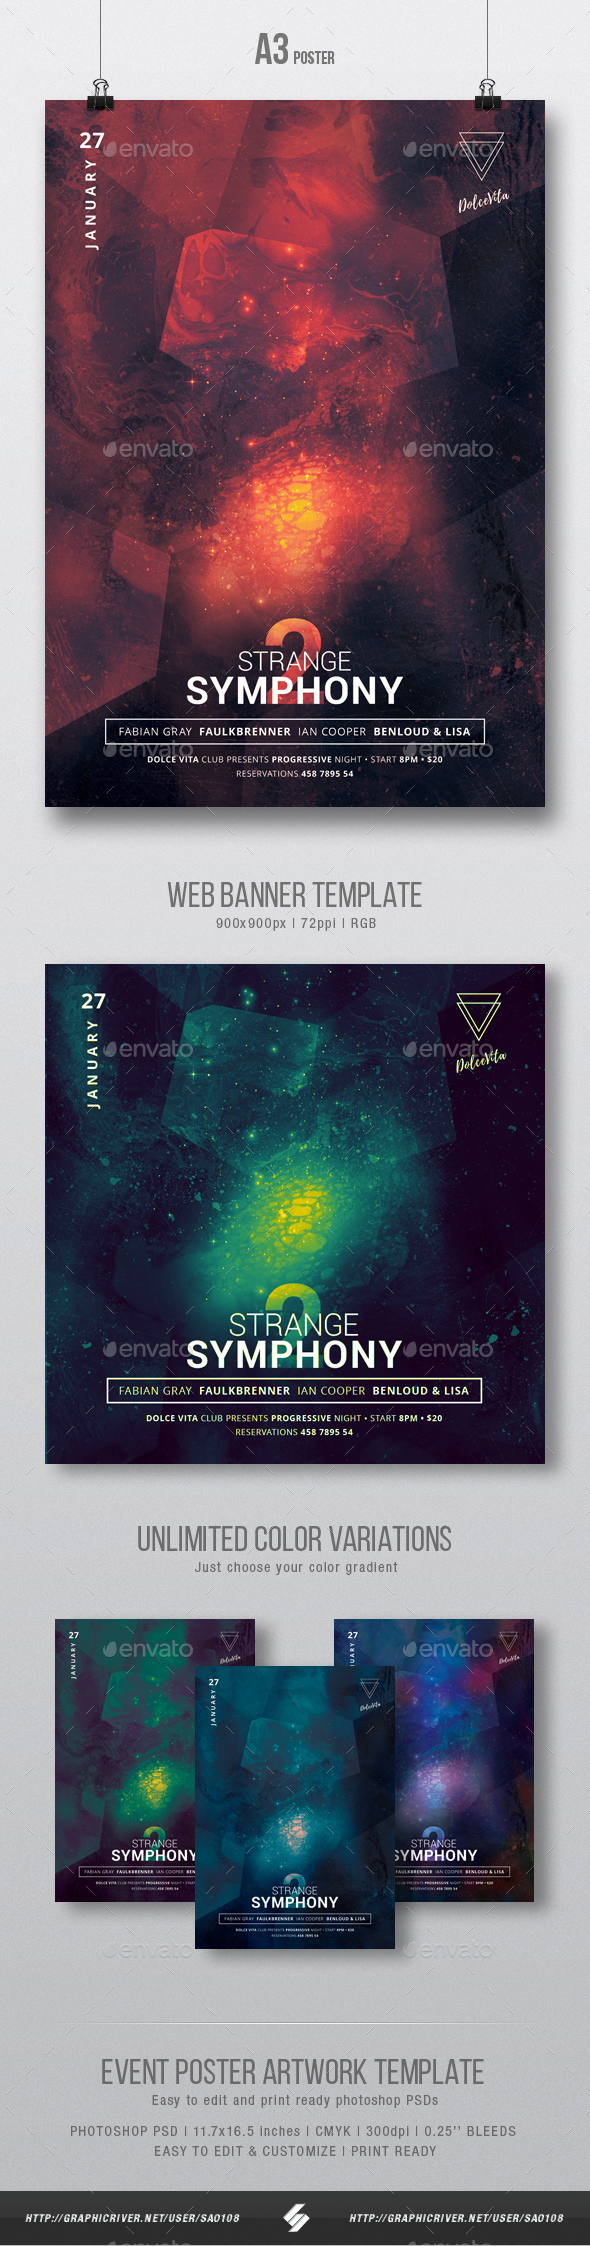 Strange Symphony vol.2 - Minimal Party Flyer / Poster Artwork Template A3 - Clubs & Parties Events